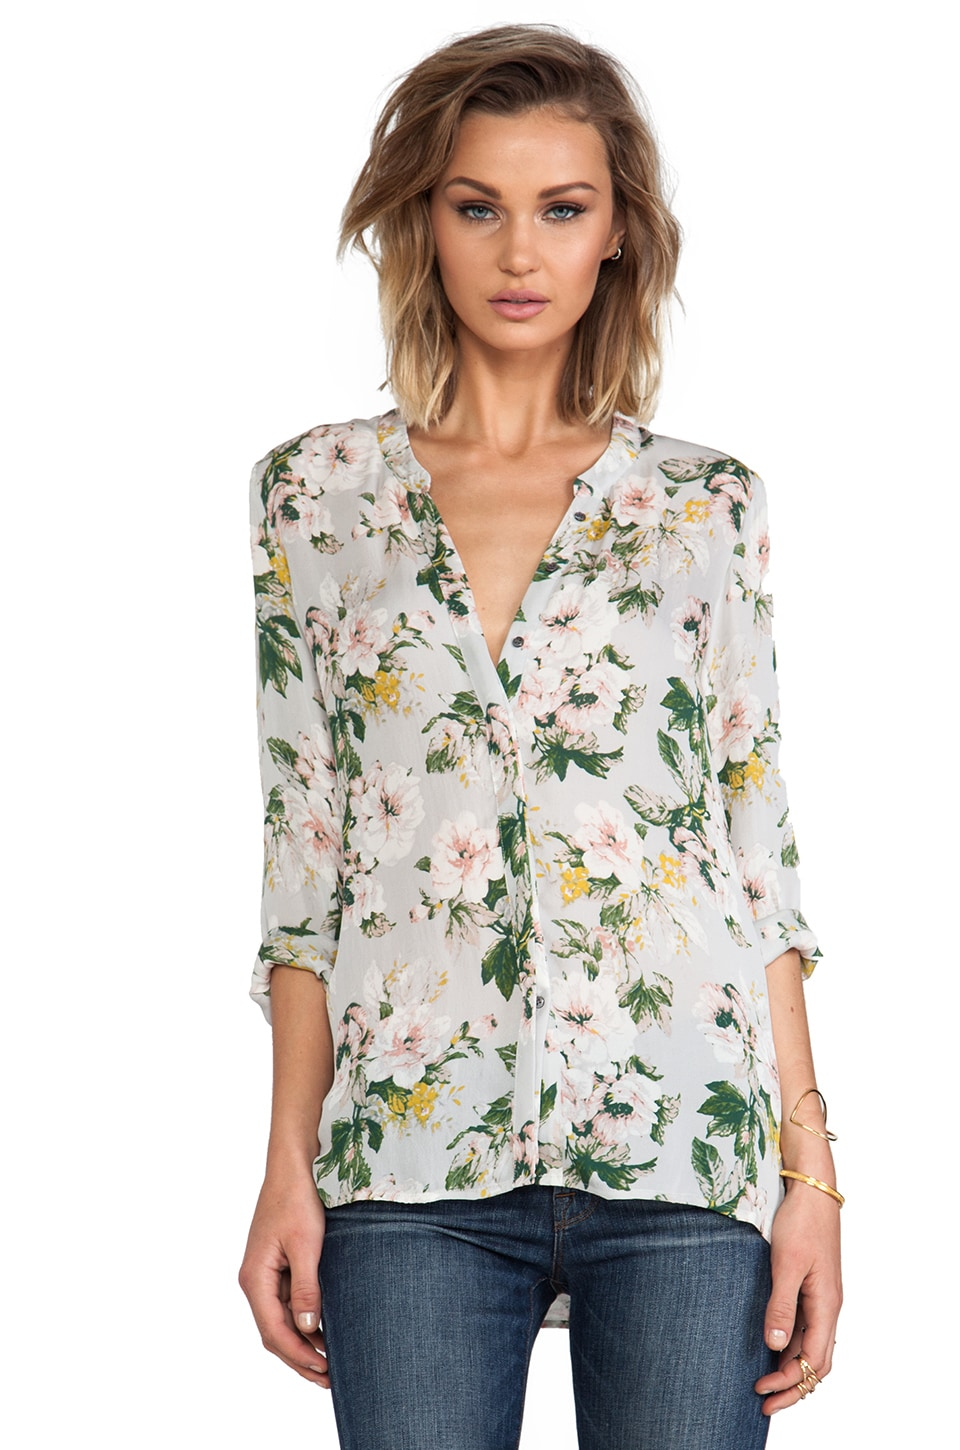 Joie Devitri Cabbage Rose Blouse in Light Smoke